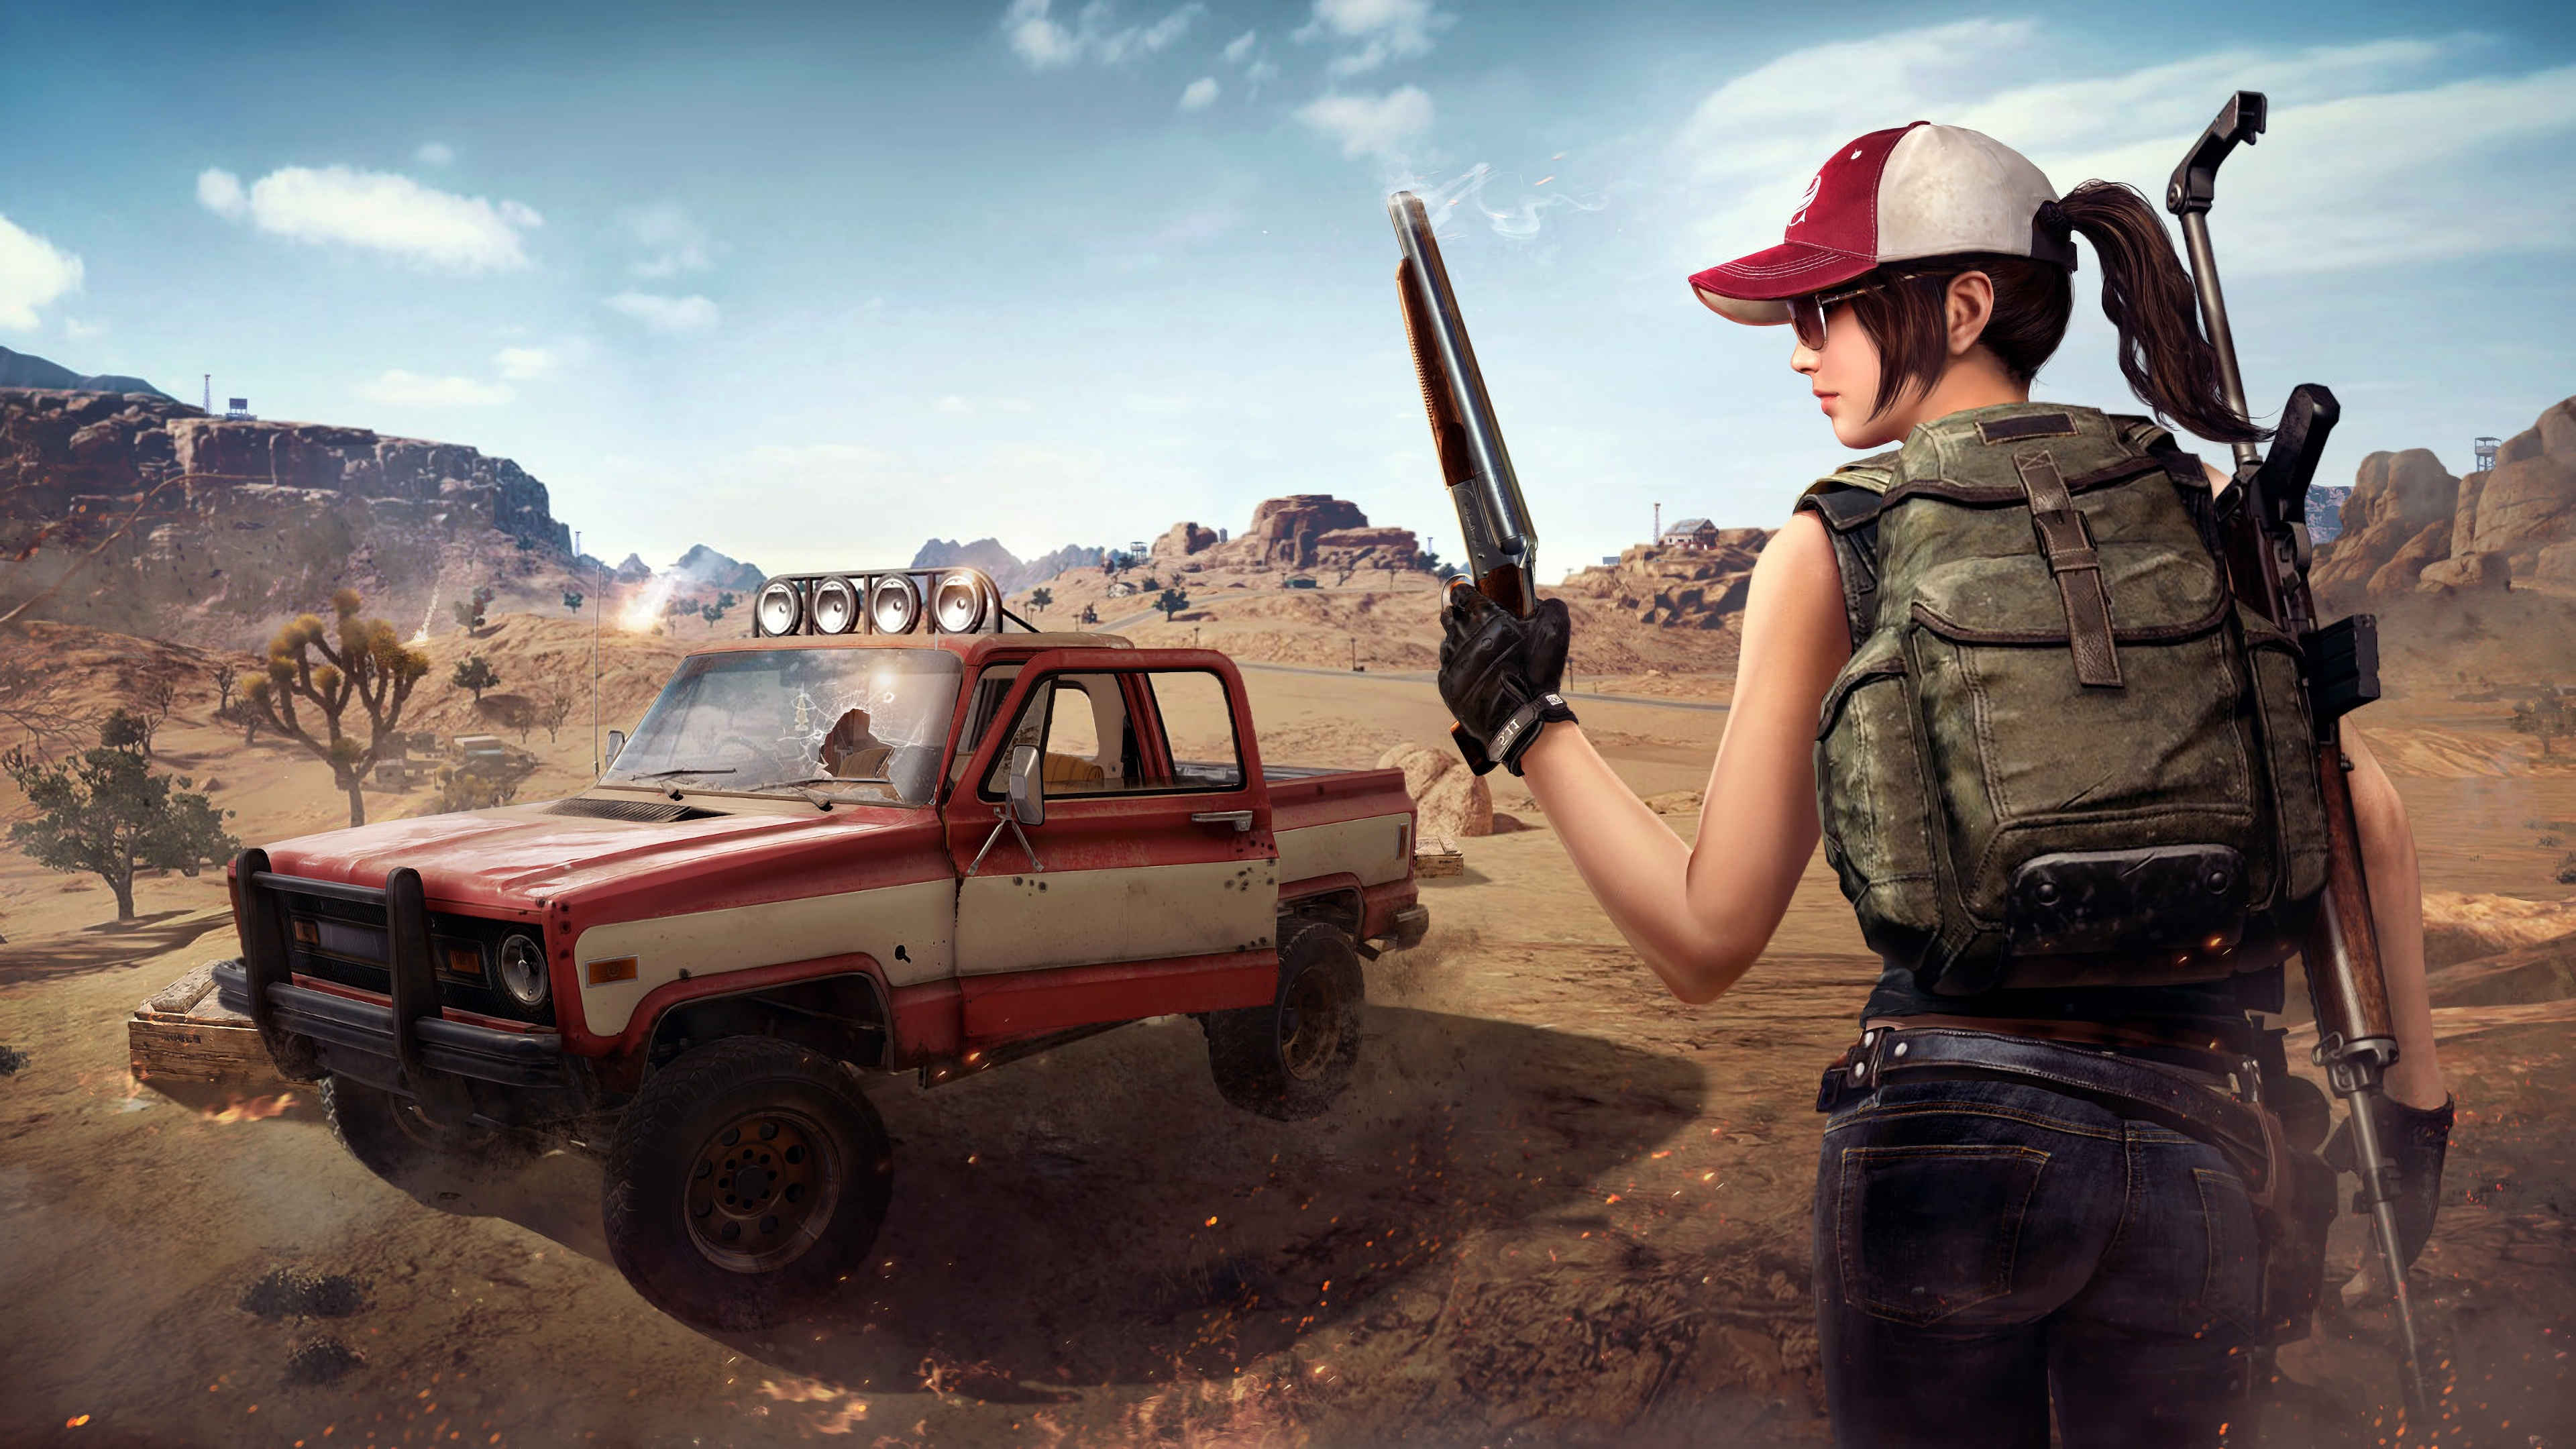 Pubg Helmet Guy With Girls And Guns 4k Hd Games 4k: Wallpaper 4k Player Unknowns Battlegrounds Pubg 4k Girl Player